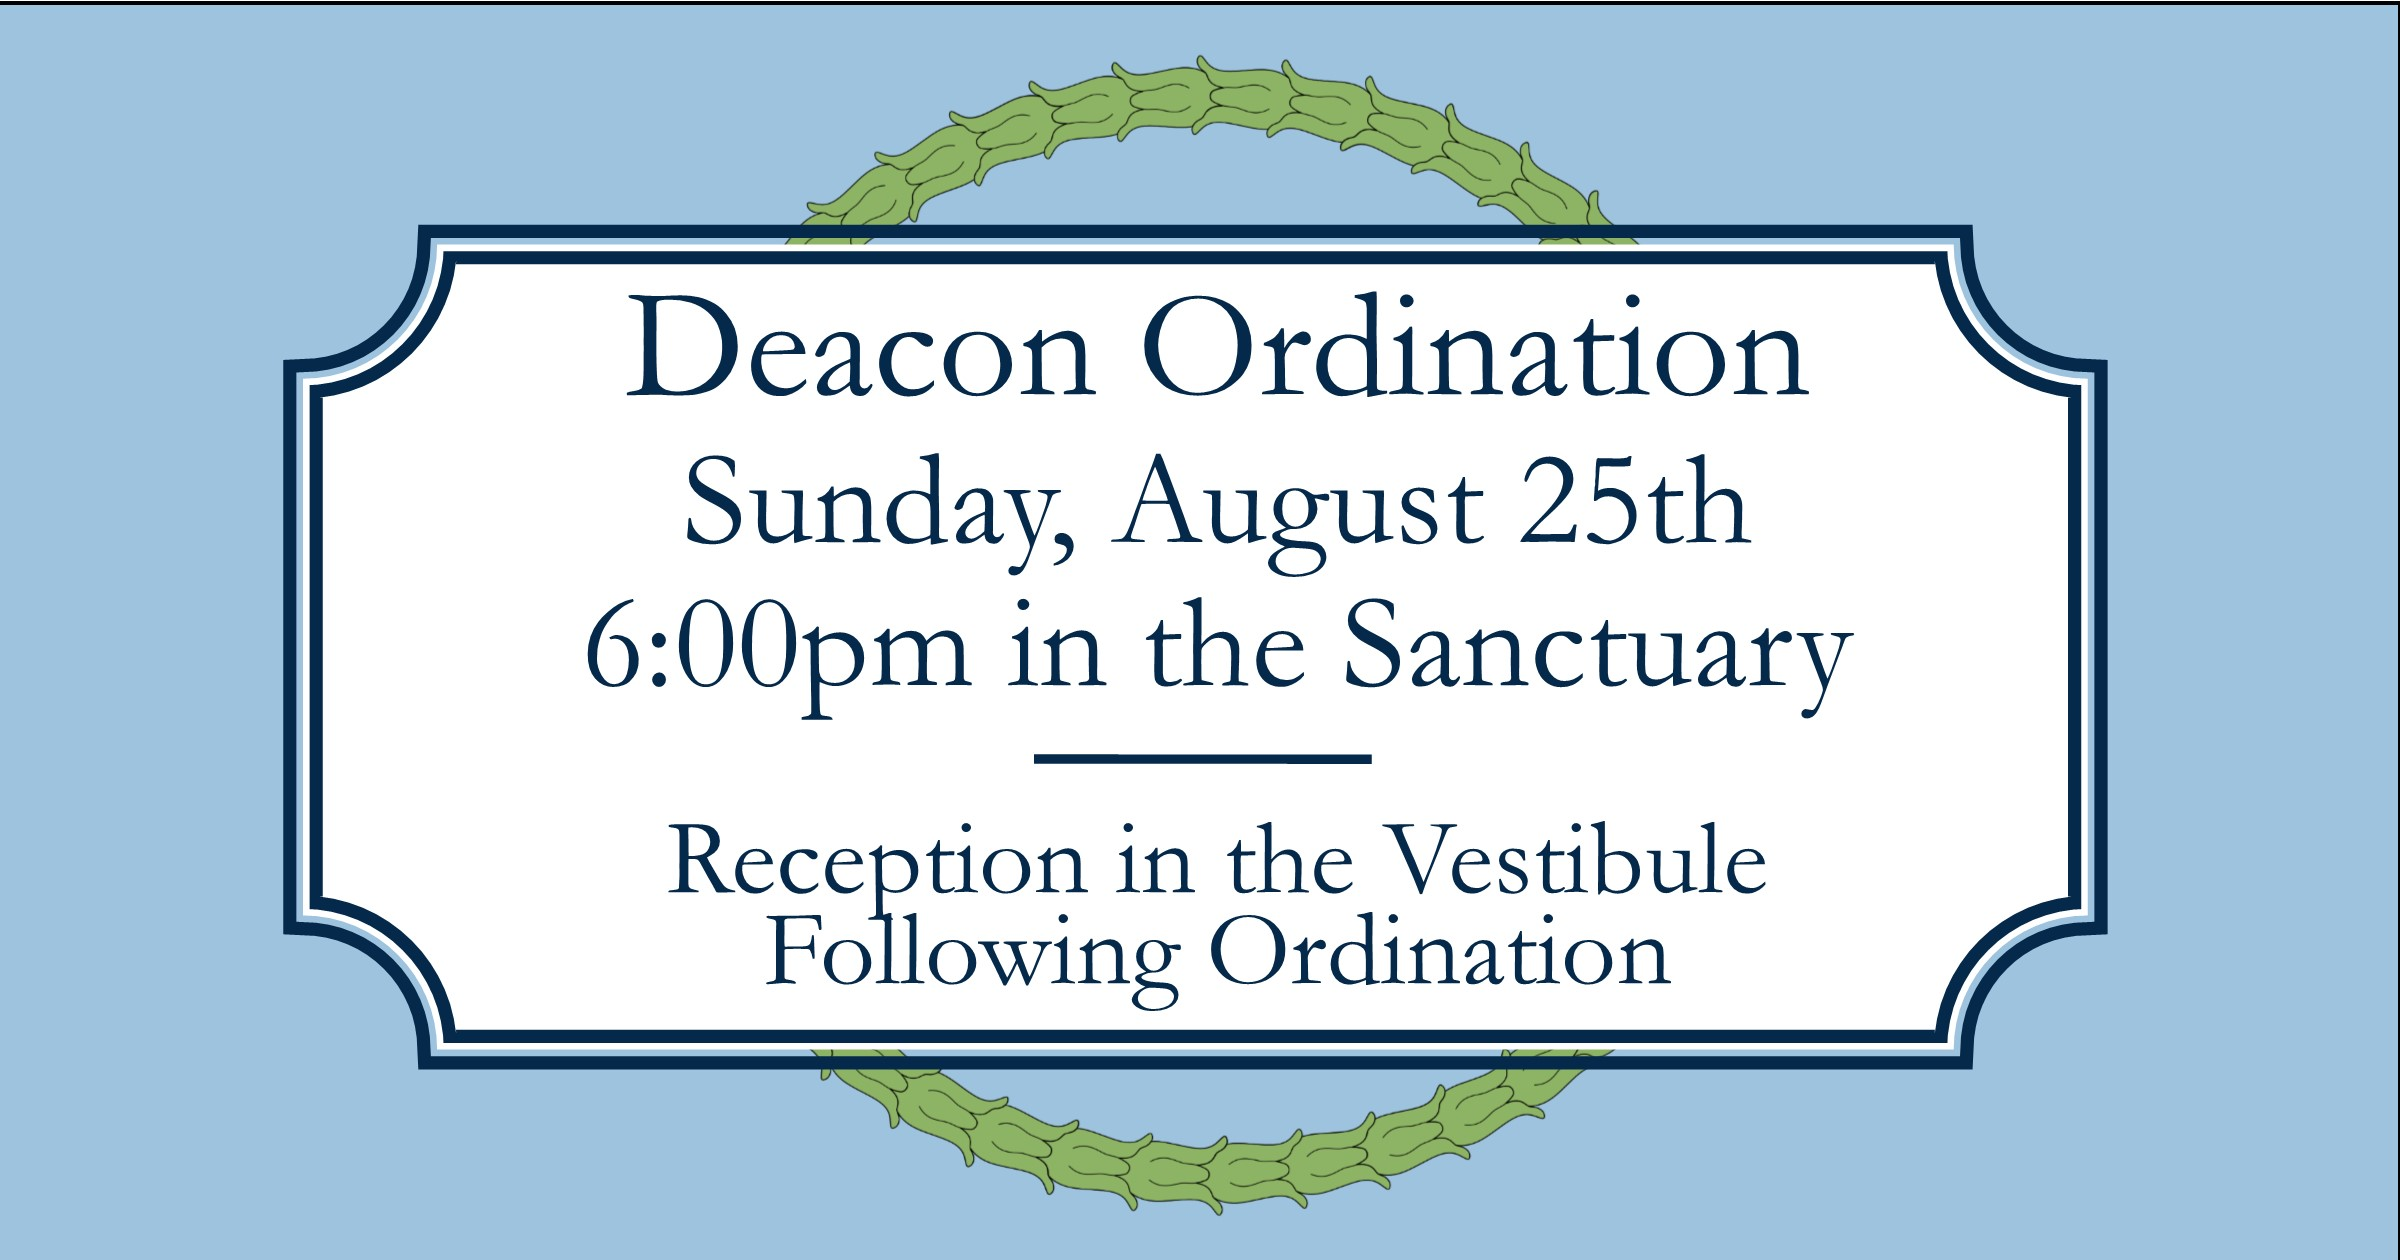 Deacon Ordination fb image Aug 2019.jpg